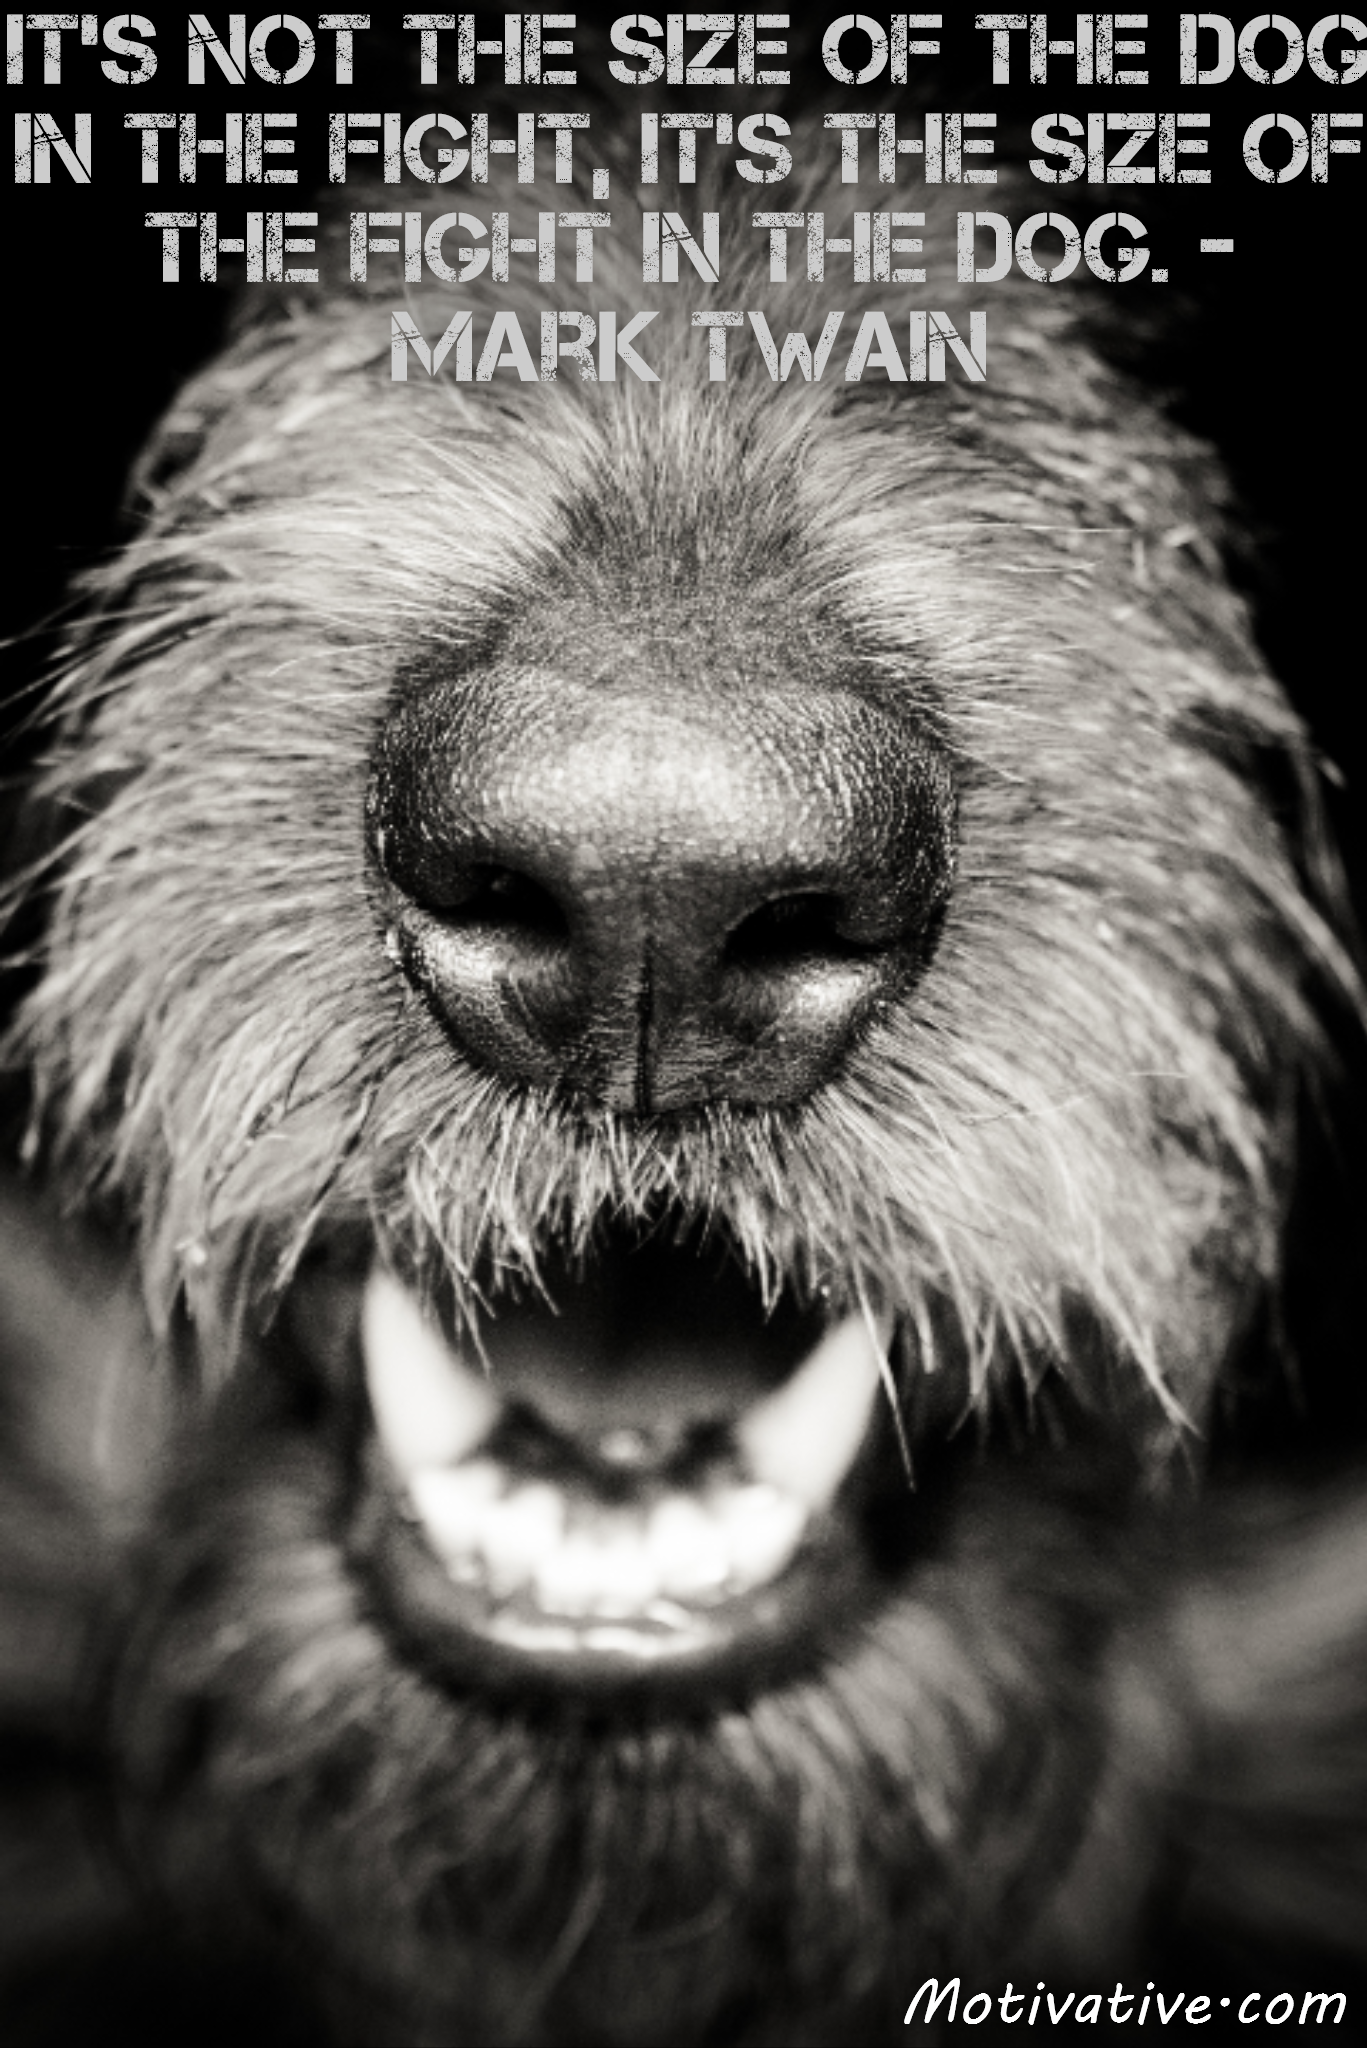 It's not the size of the dog in the fight, it's the size of the fight in the dog. – Mark Twain